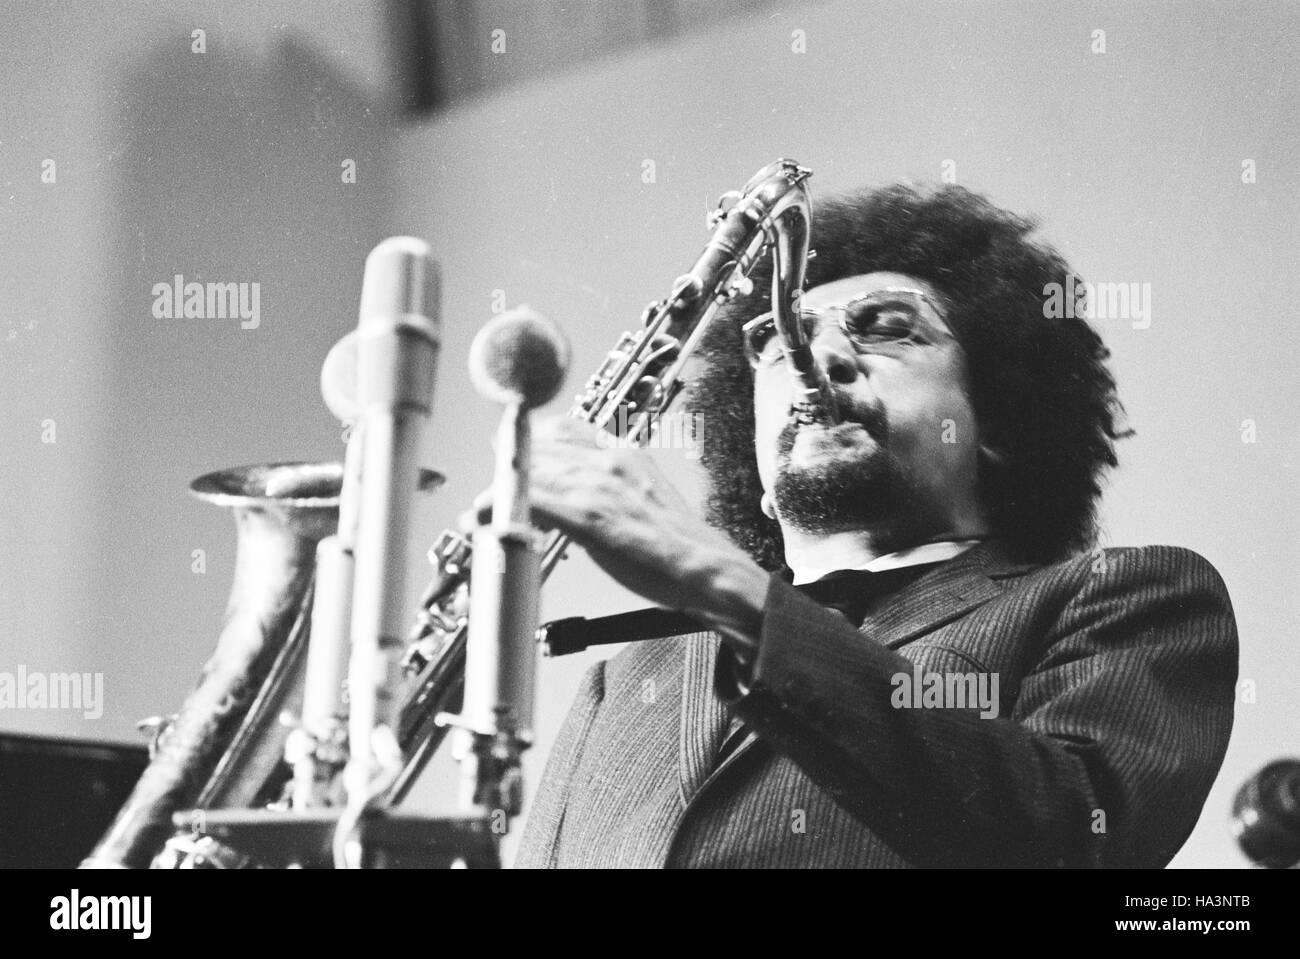 Charles Lloyd performing at the International Jazz Festival at Tallinn, 1967. - Stock Image